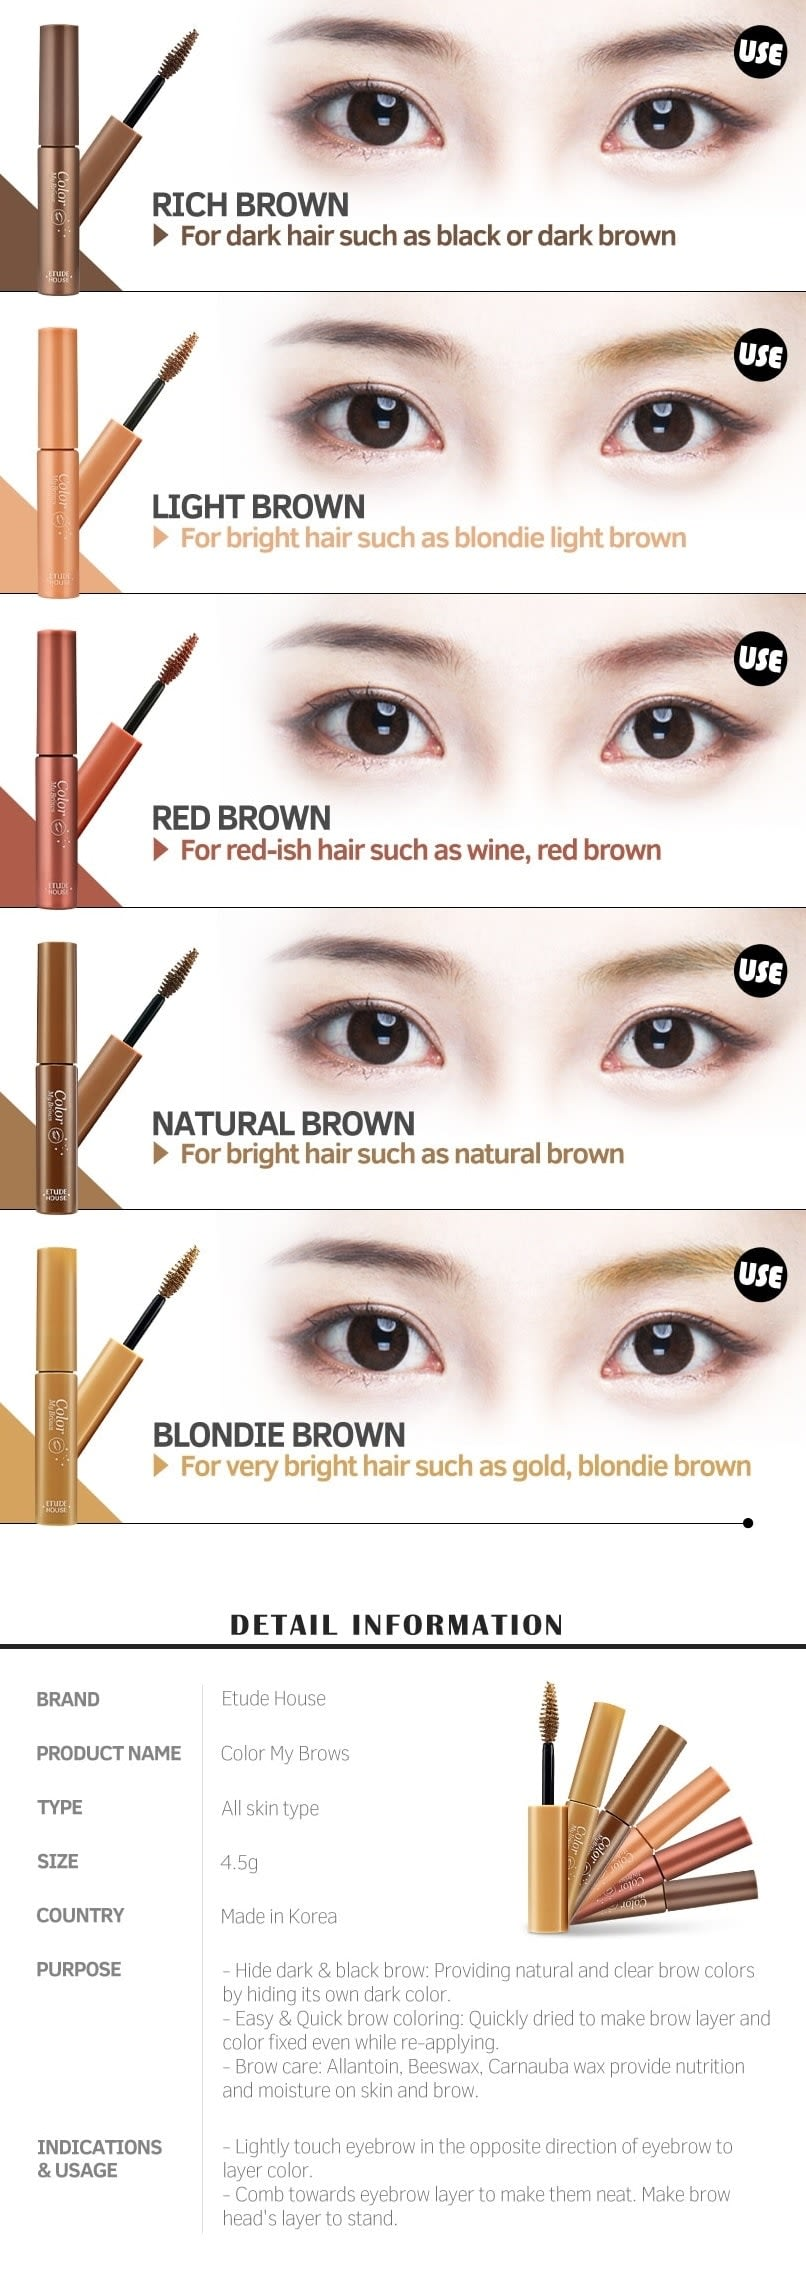 Color My Brows 4.5g Colors Description How to use